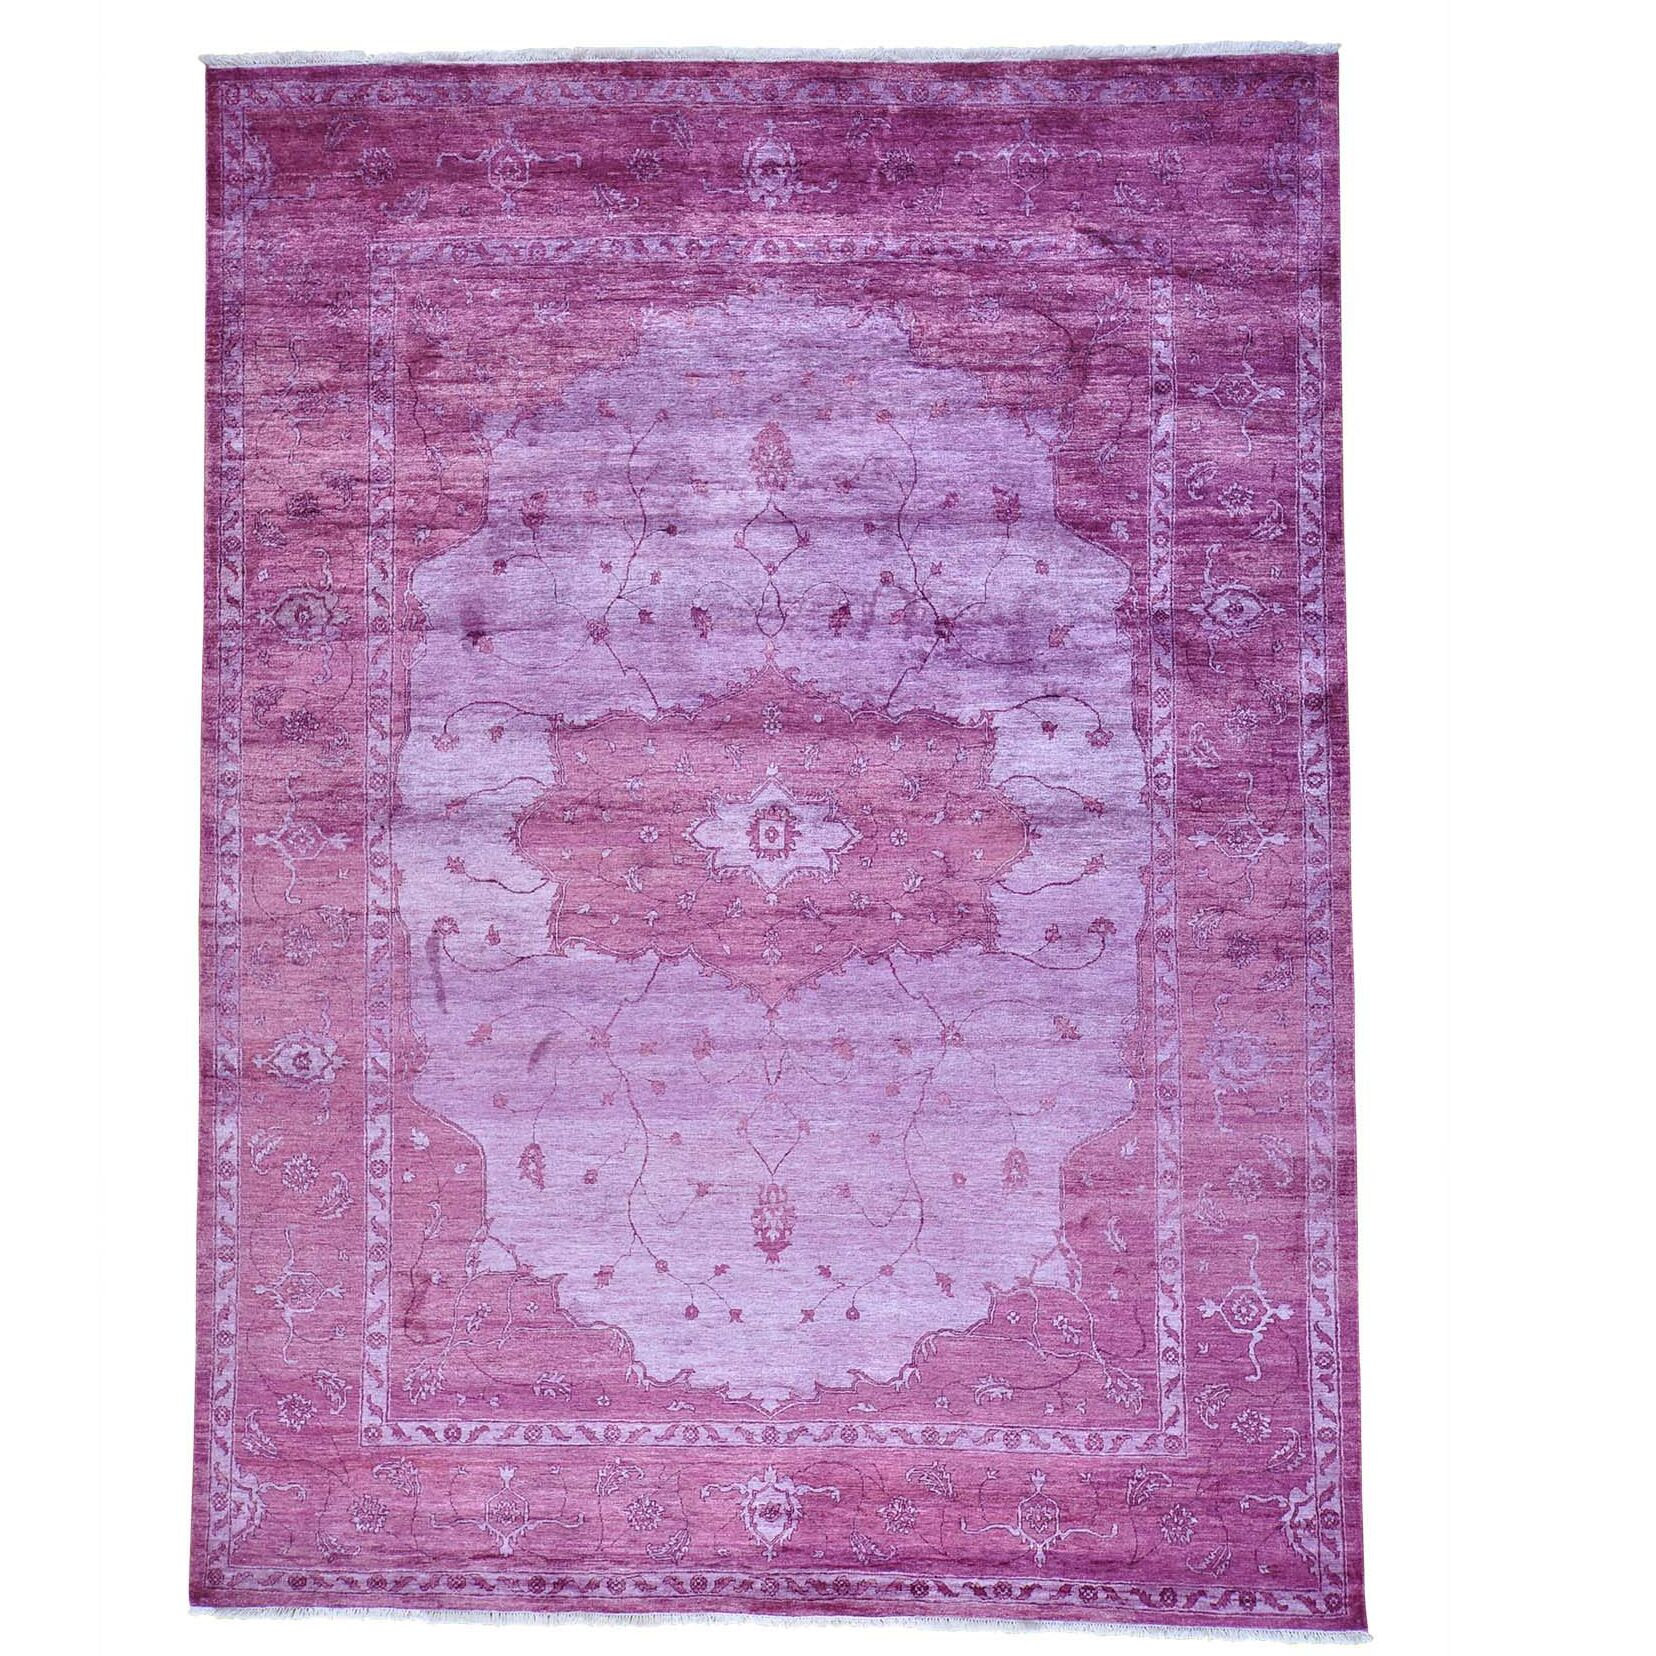 Tone on Tone Overdyed Oriental Hand-Knotted Purple Area Rug